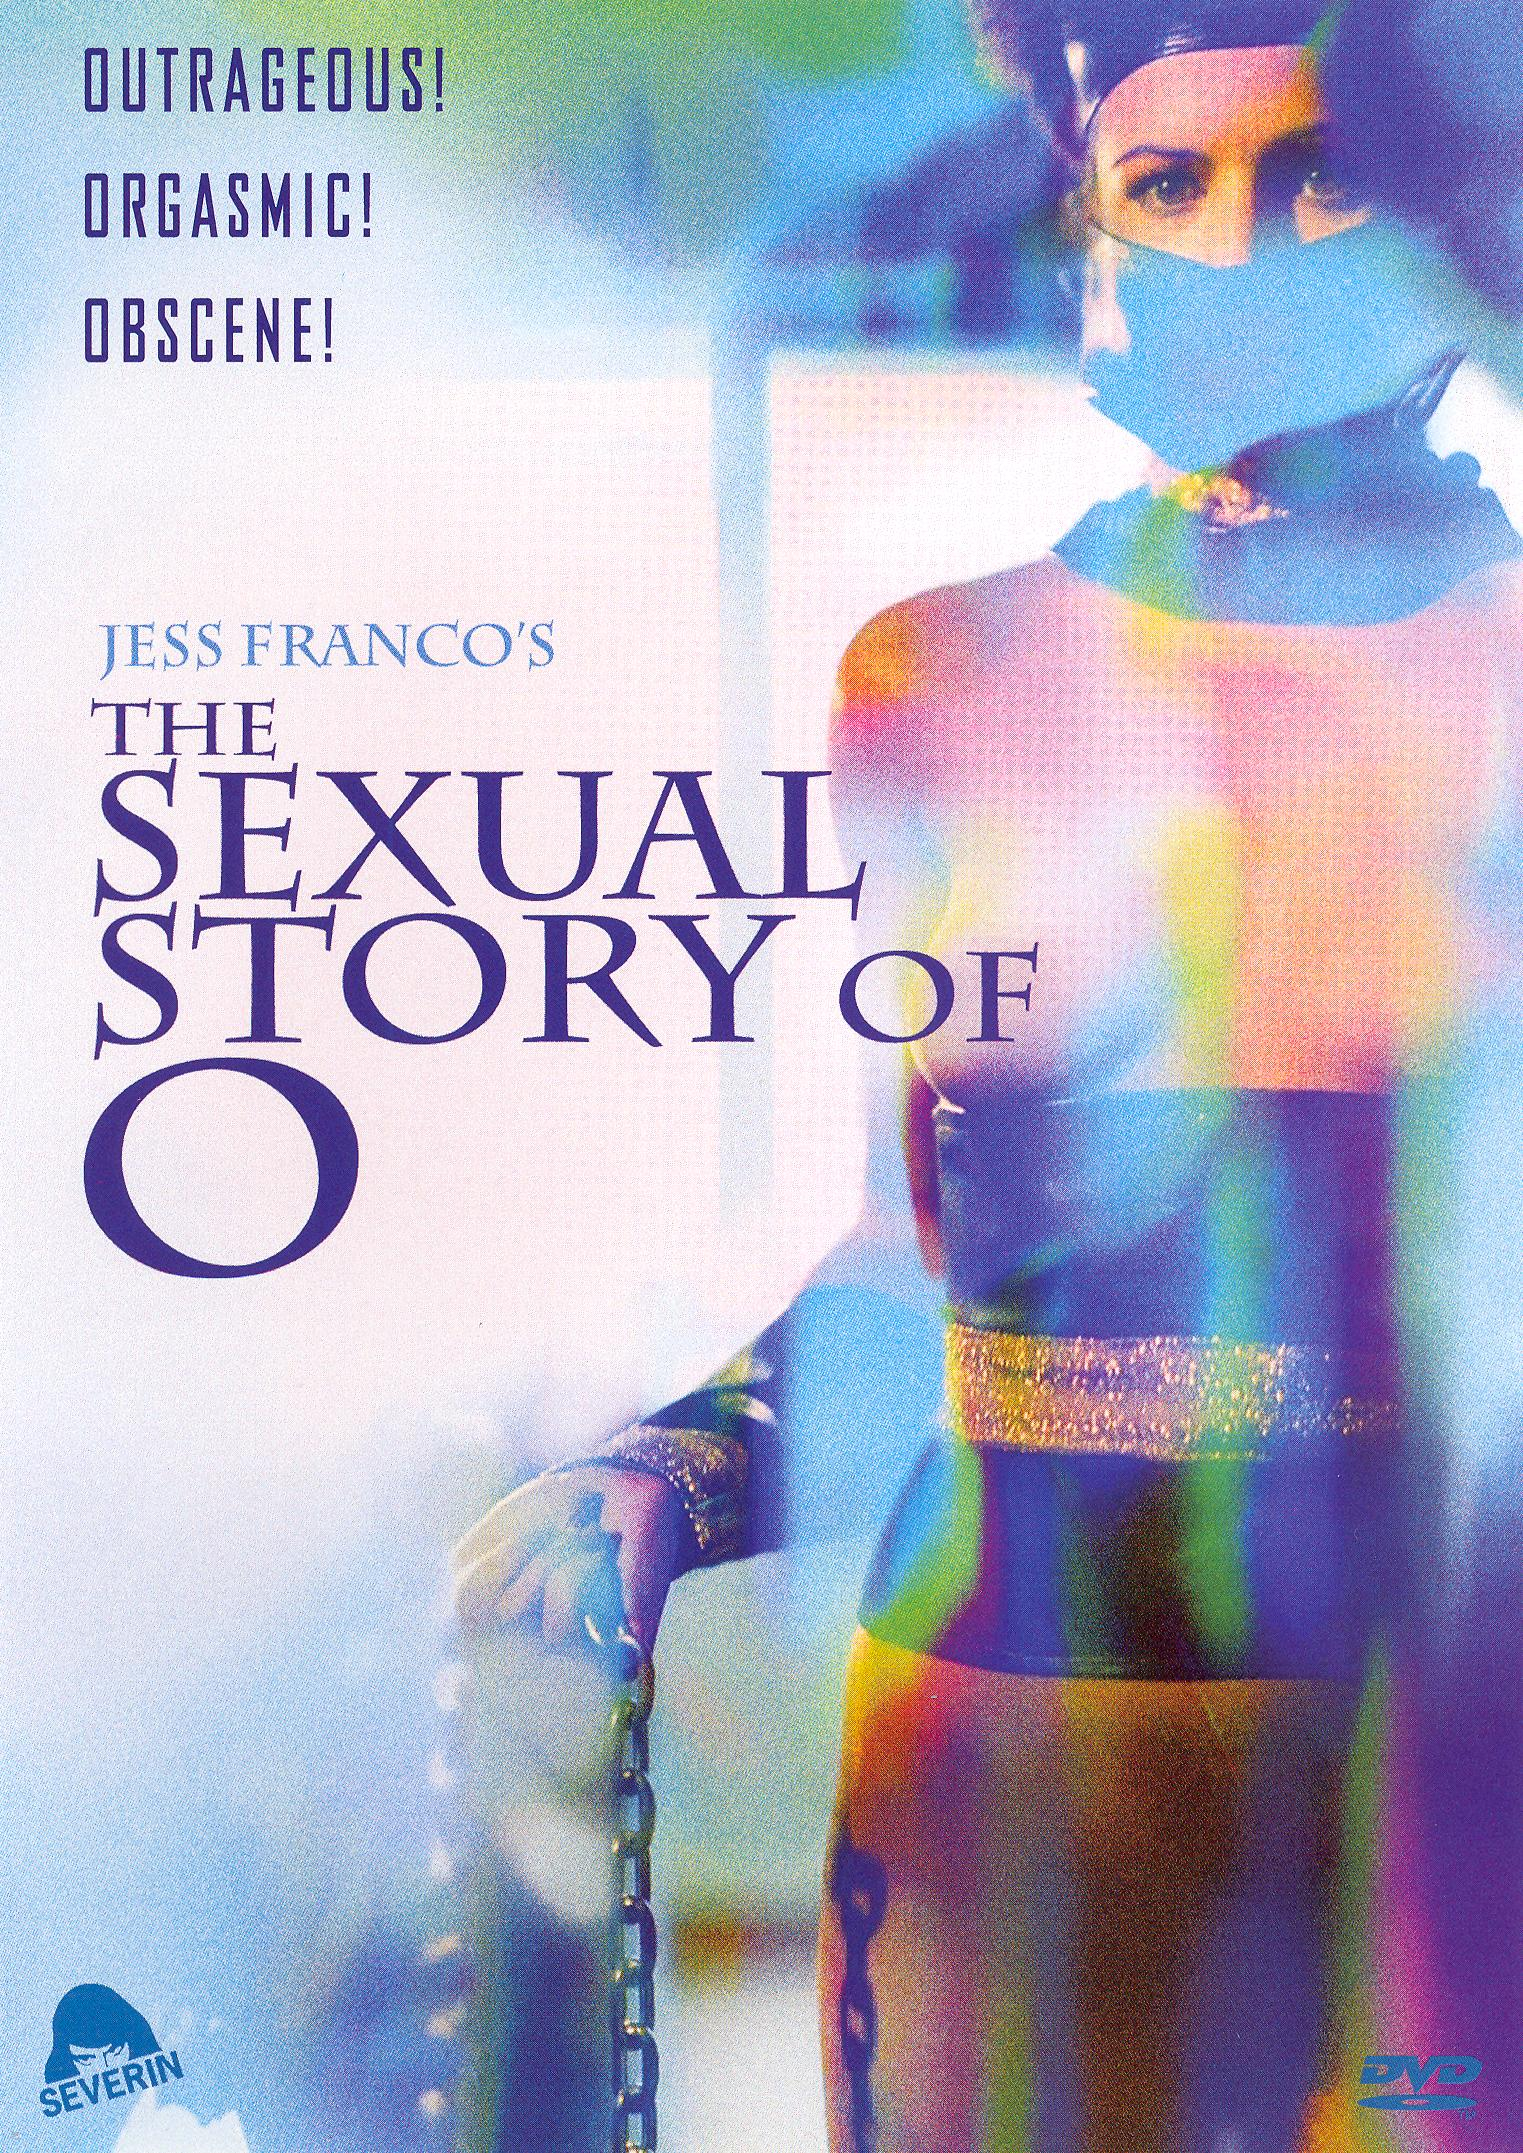 The Sexual Story of O (1984)